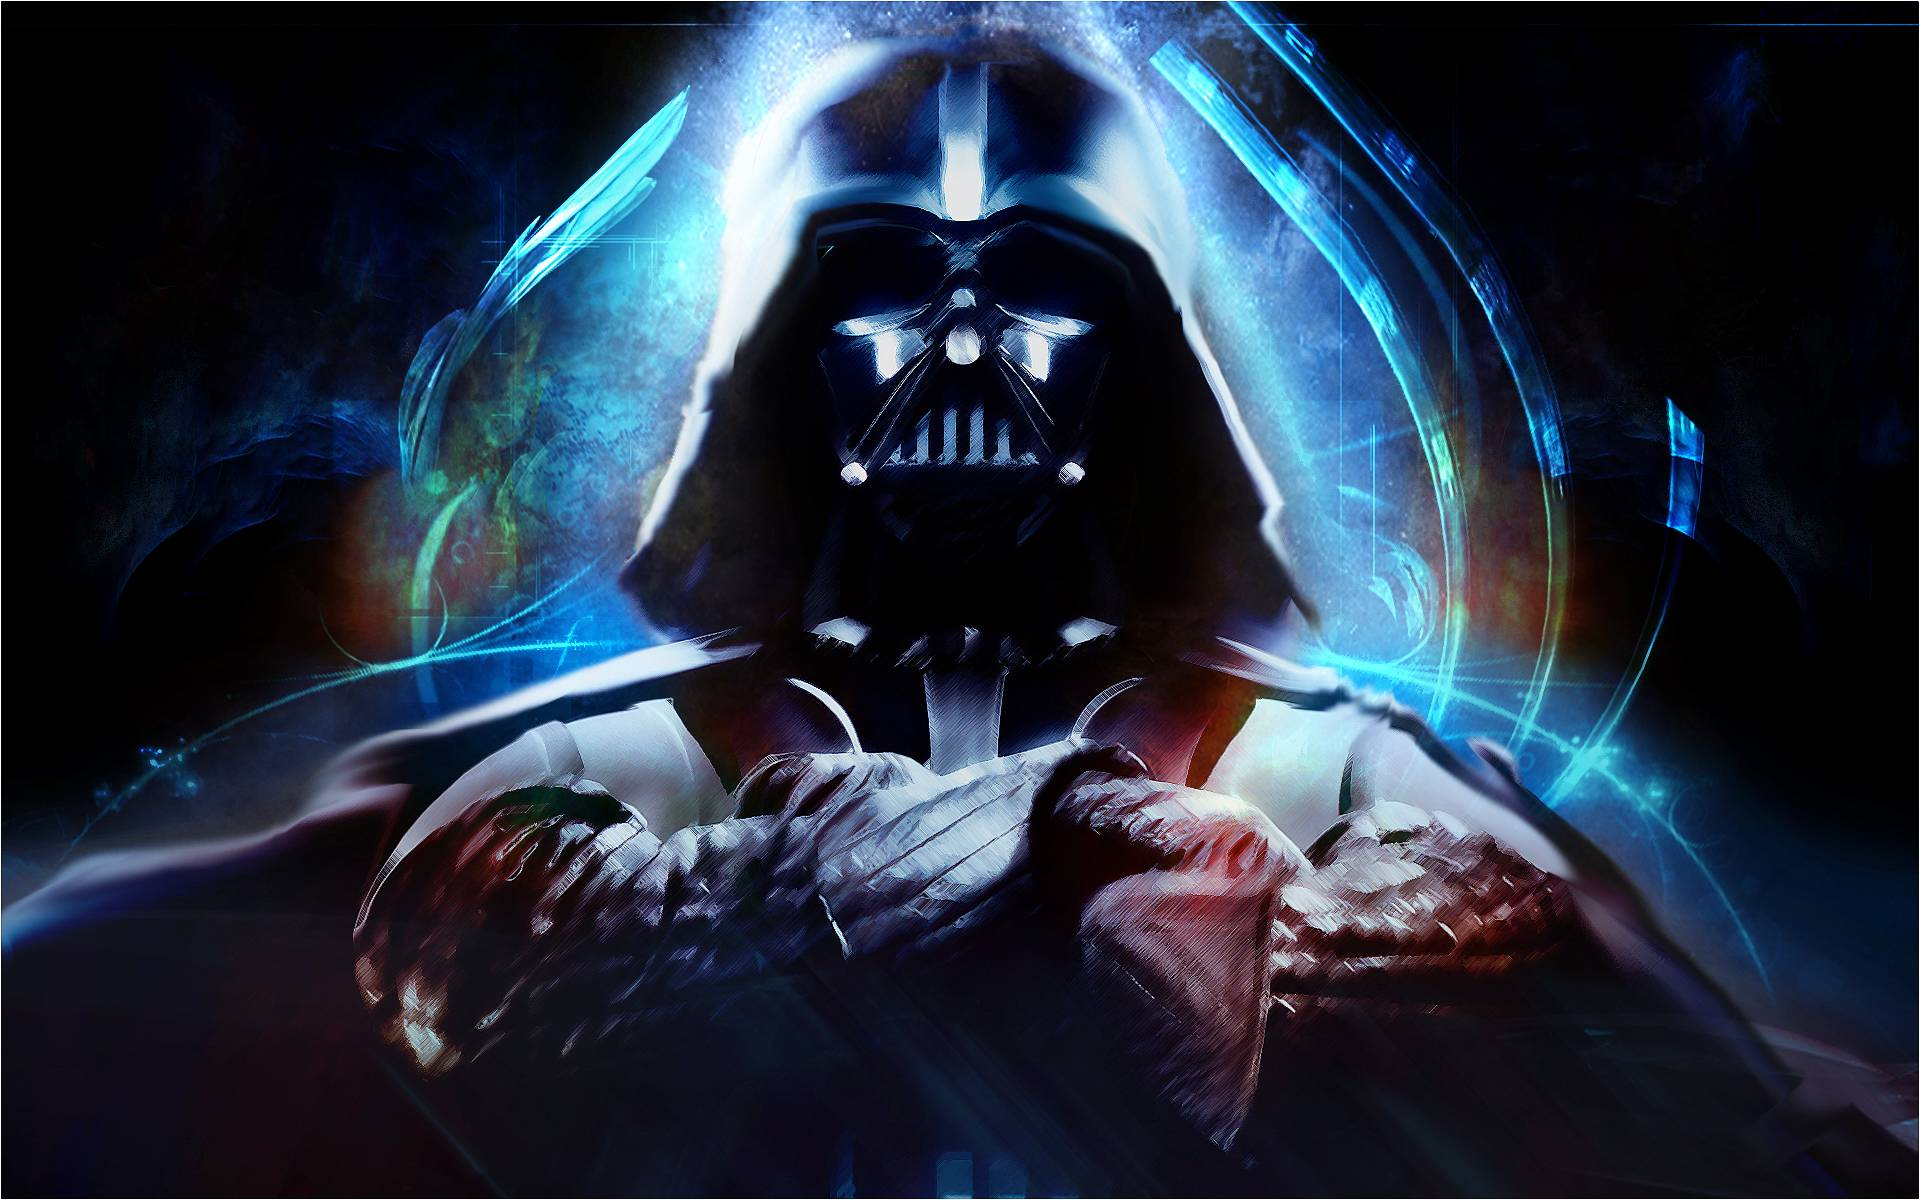 Free Download Star Wars Darth Vader Wallpapers 1920x1200 For